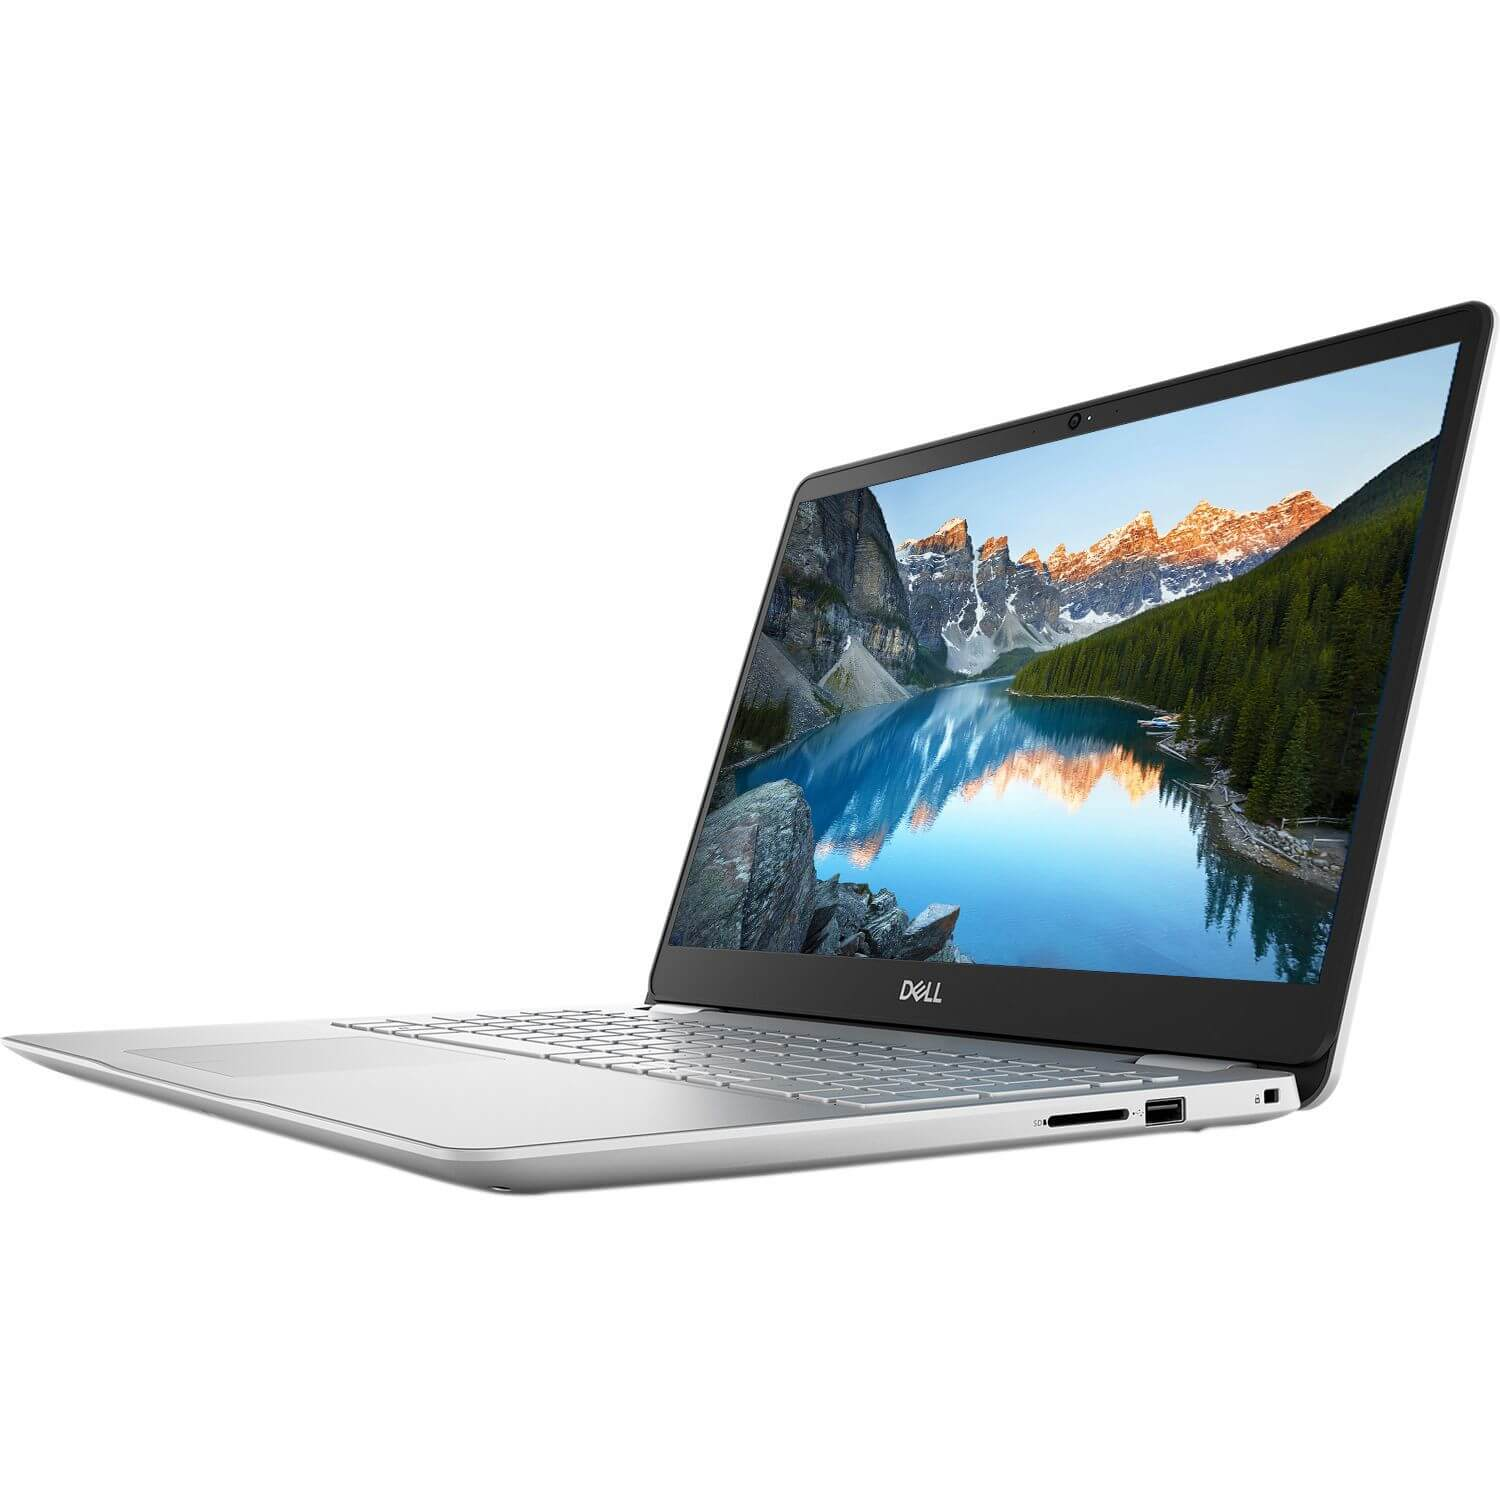 DELL INSPIRION 15 5584-6779 I5-8265U 1.6 / 16384 MB DDR4 / 240 GB SSD M.2 + 1 TB HDD / WINDOWS 10 HOME / 15.6